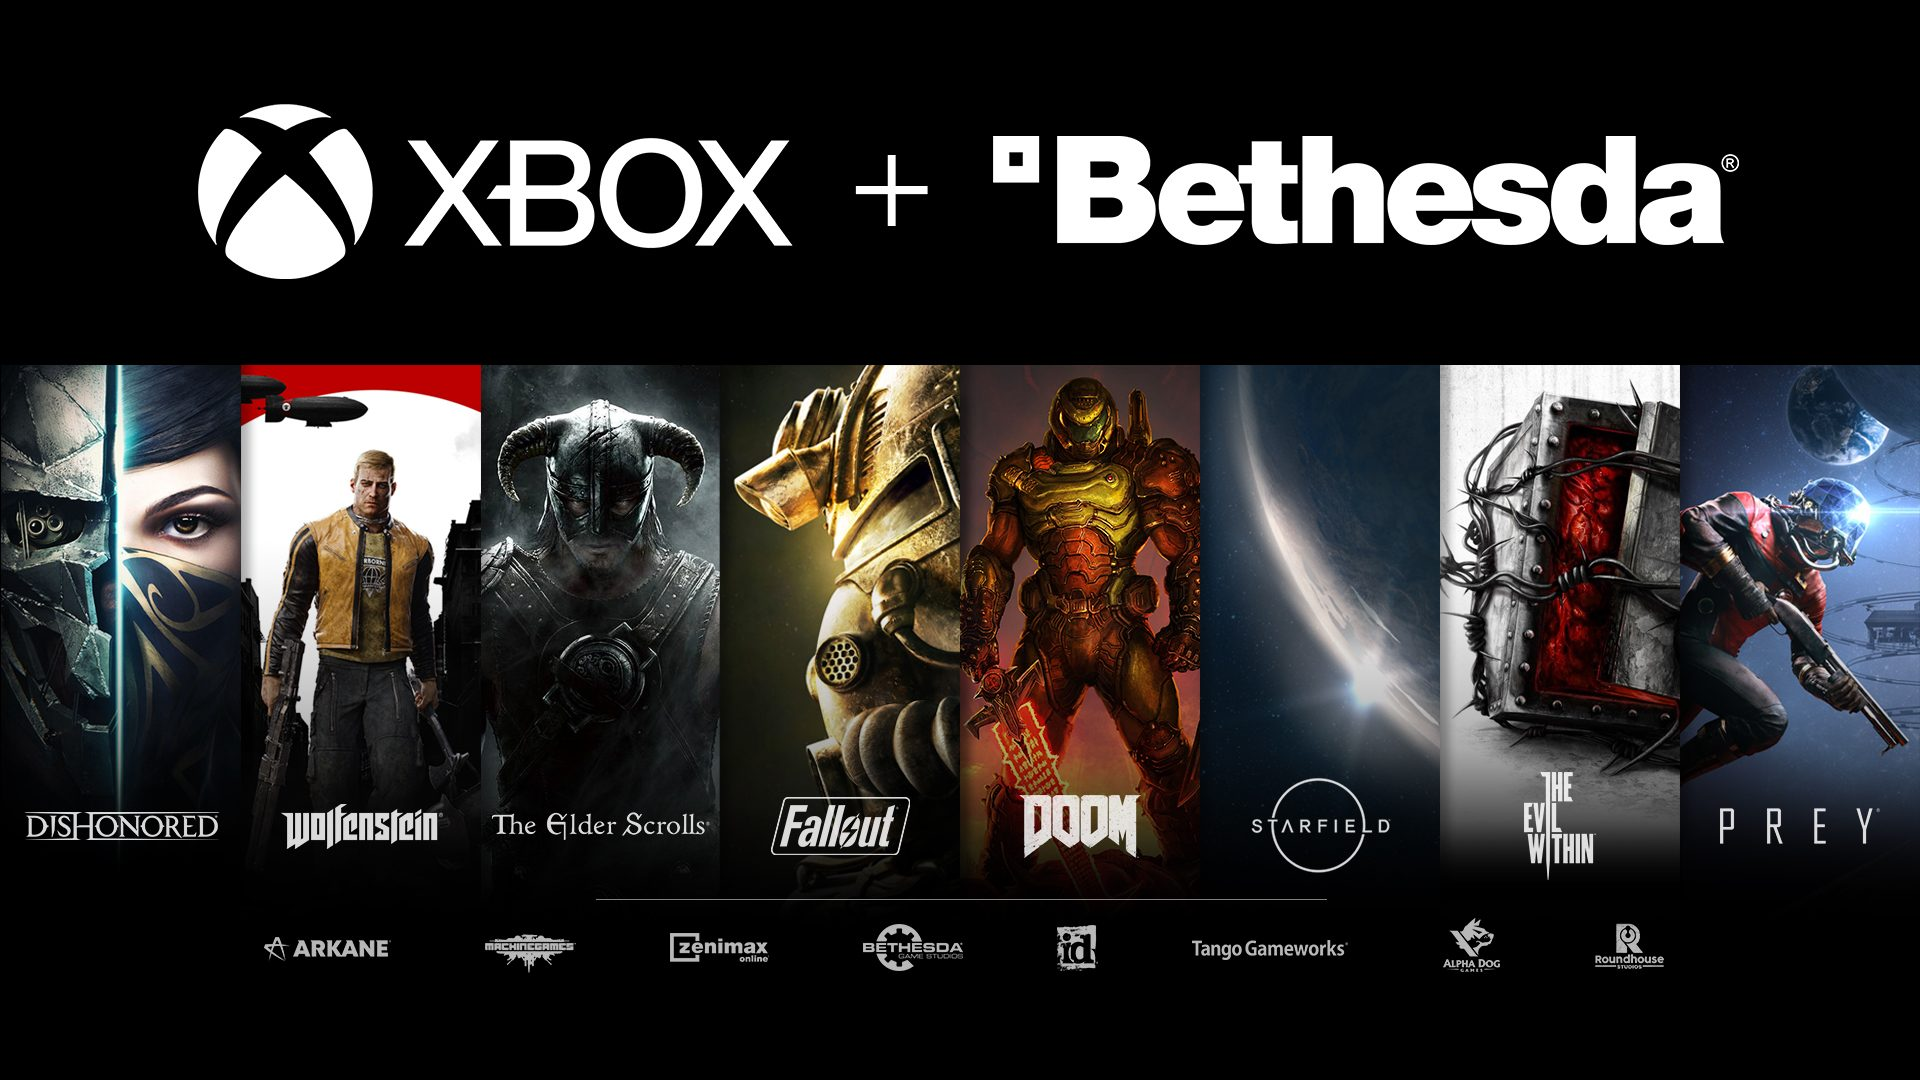 Xbox's Phil Spencer Suggests Exclusivity for Future Bethesda Titles